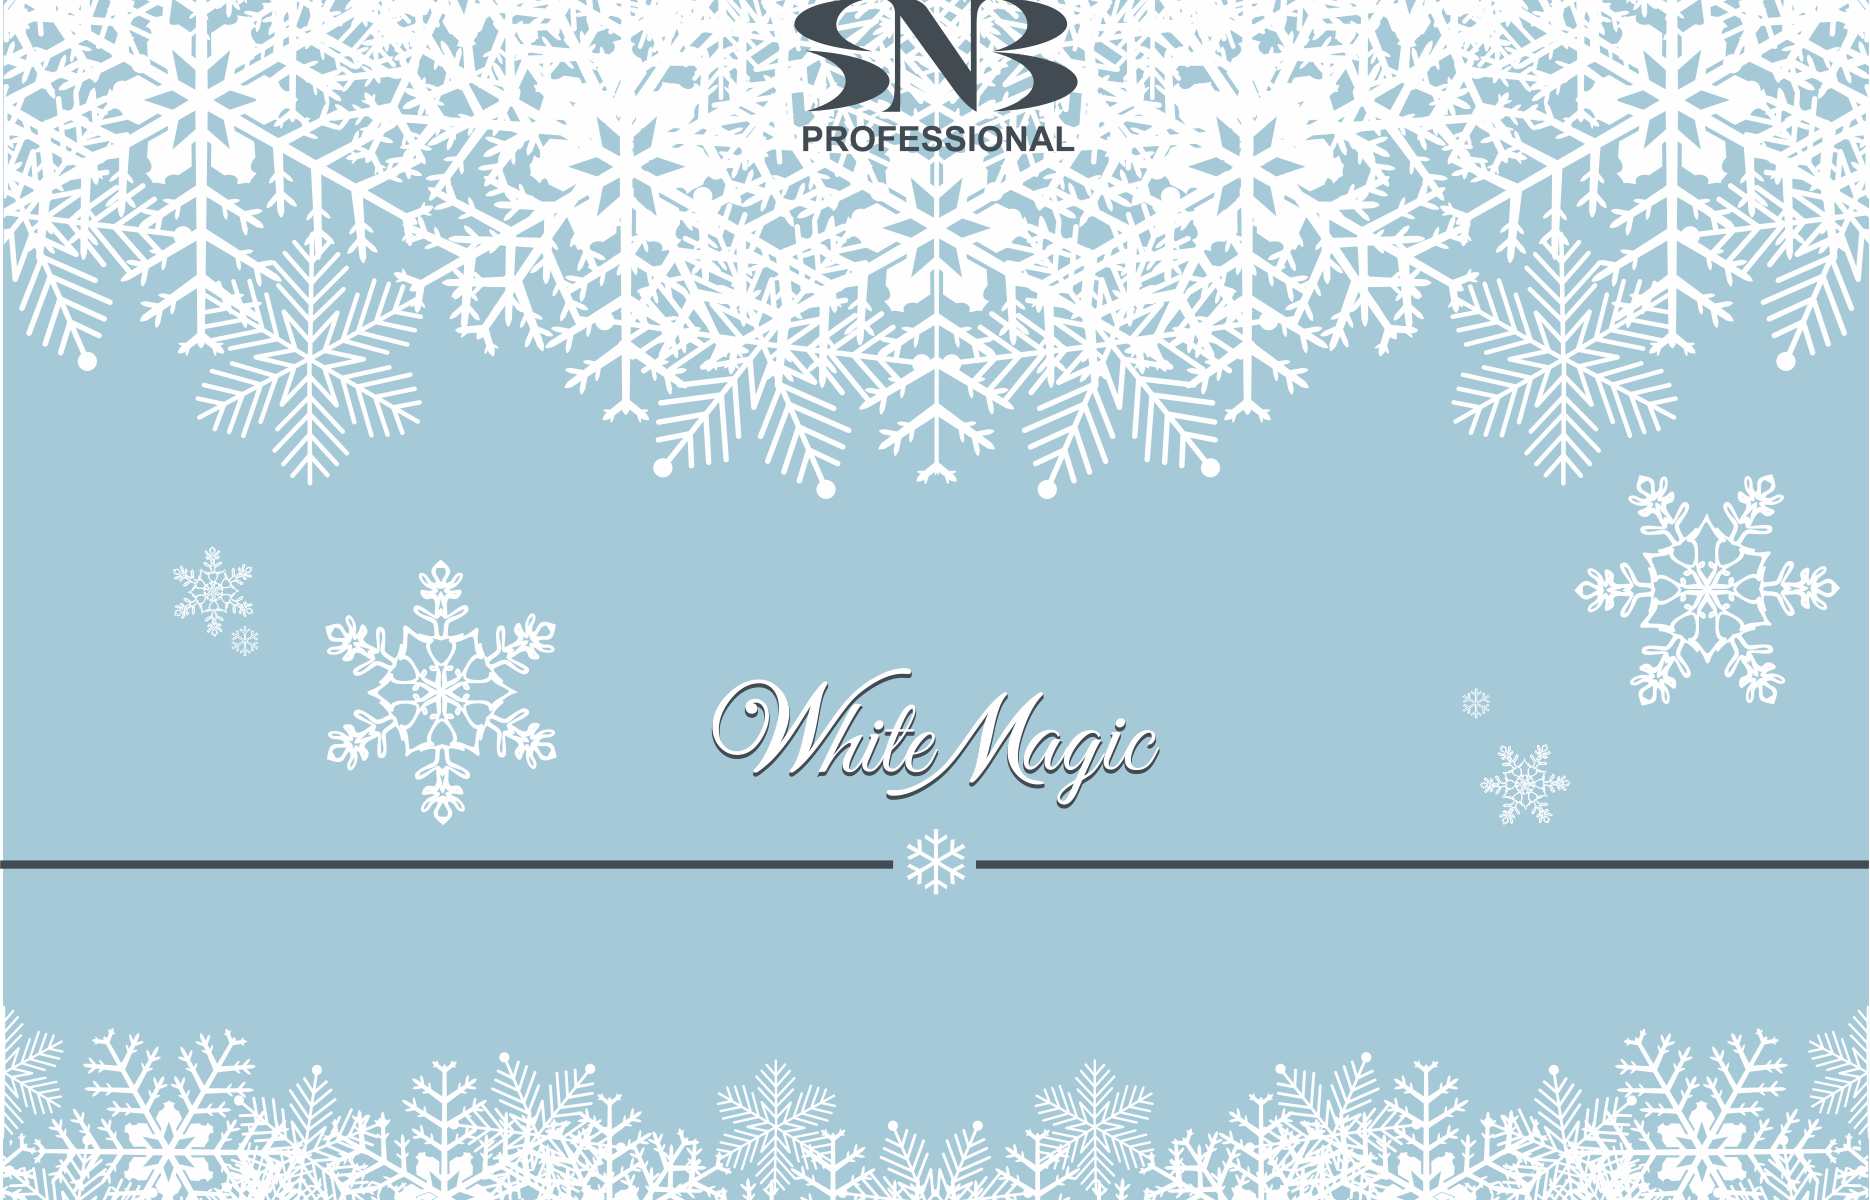 White magic by SNB Professional